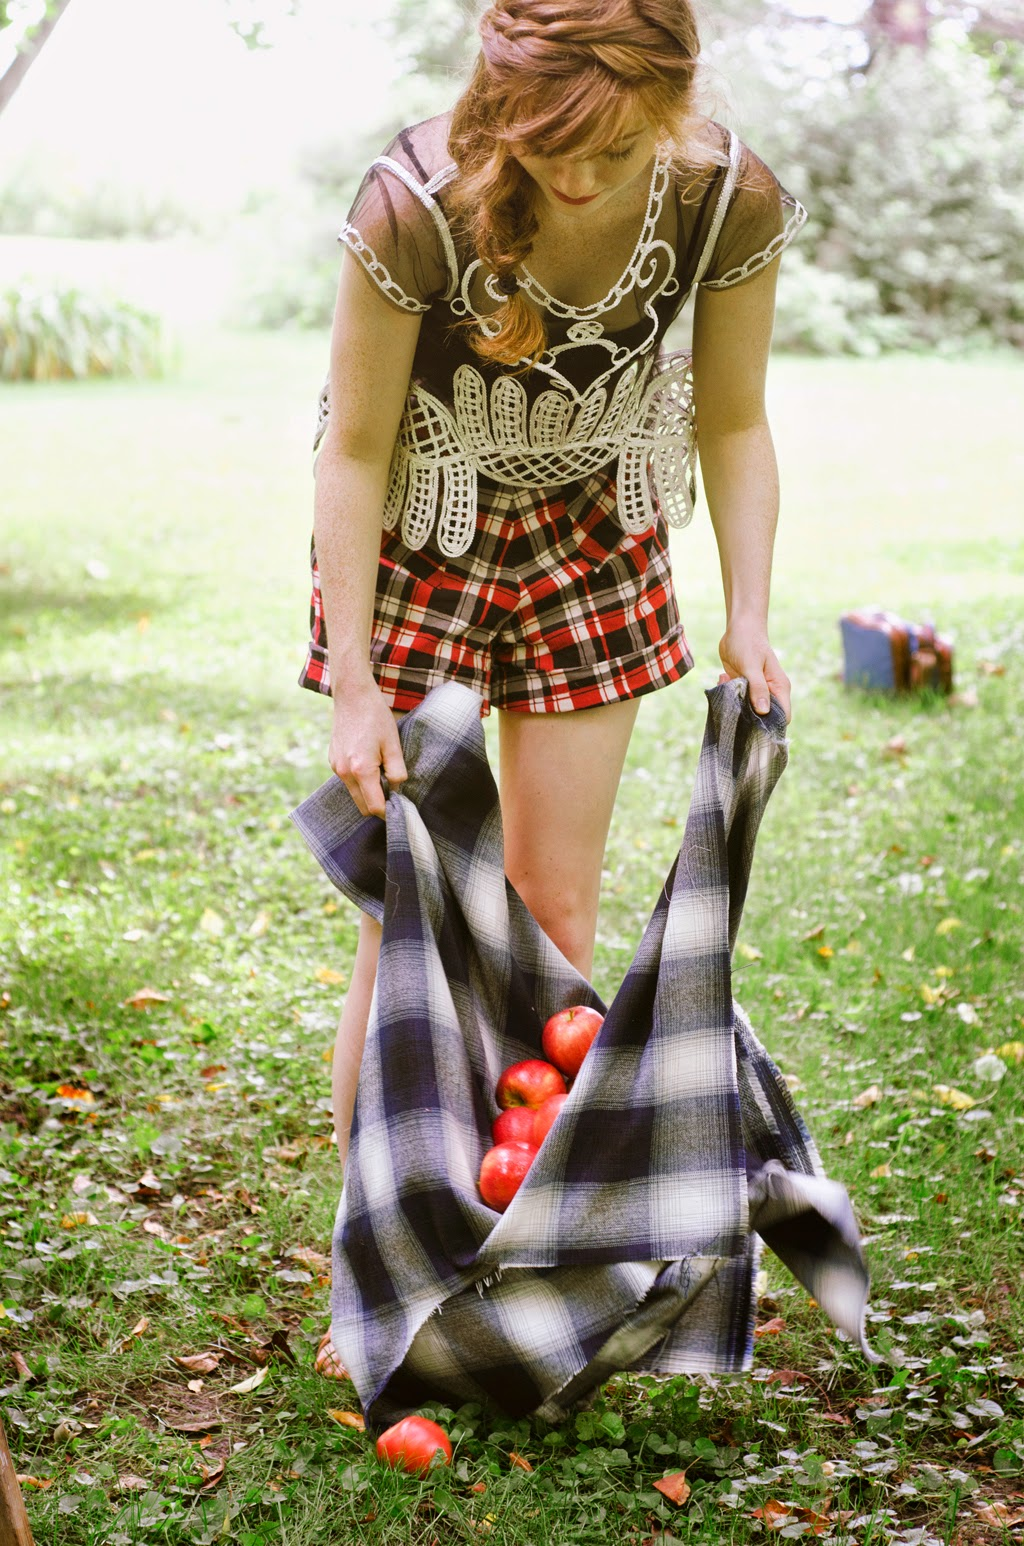 Esther from the Sticks: Summer Sewing: Vintage Plaid High Waisted Shorts